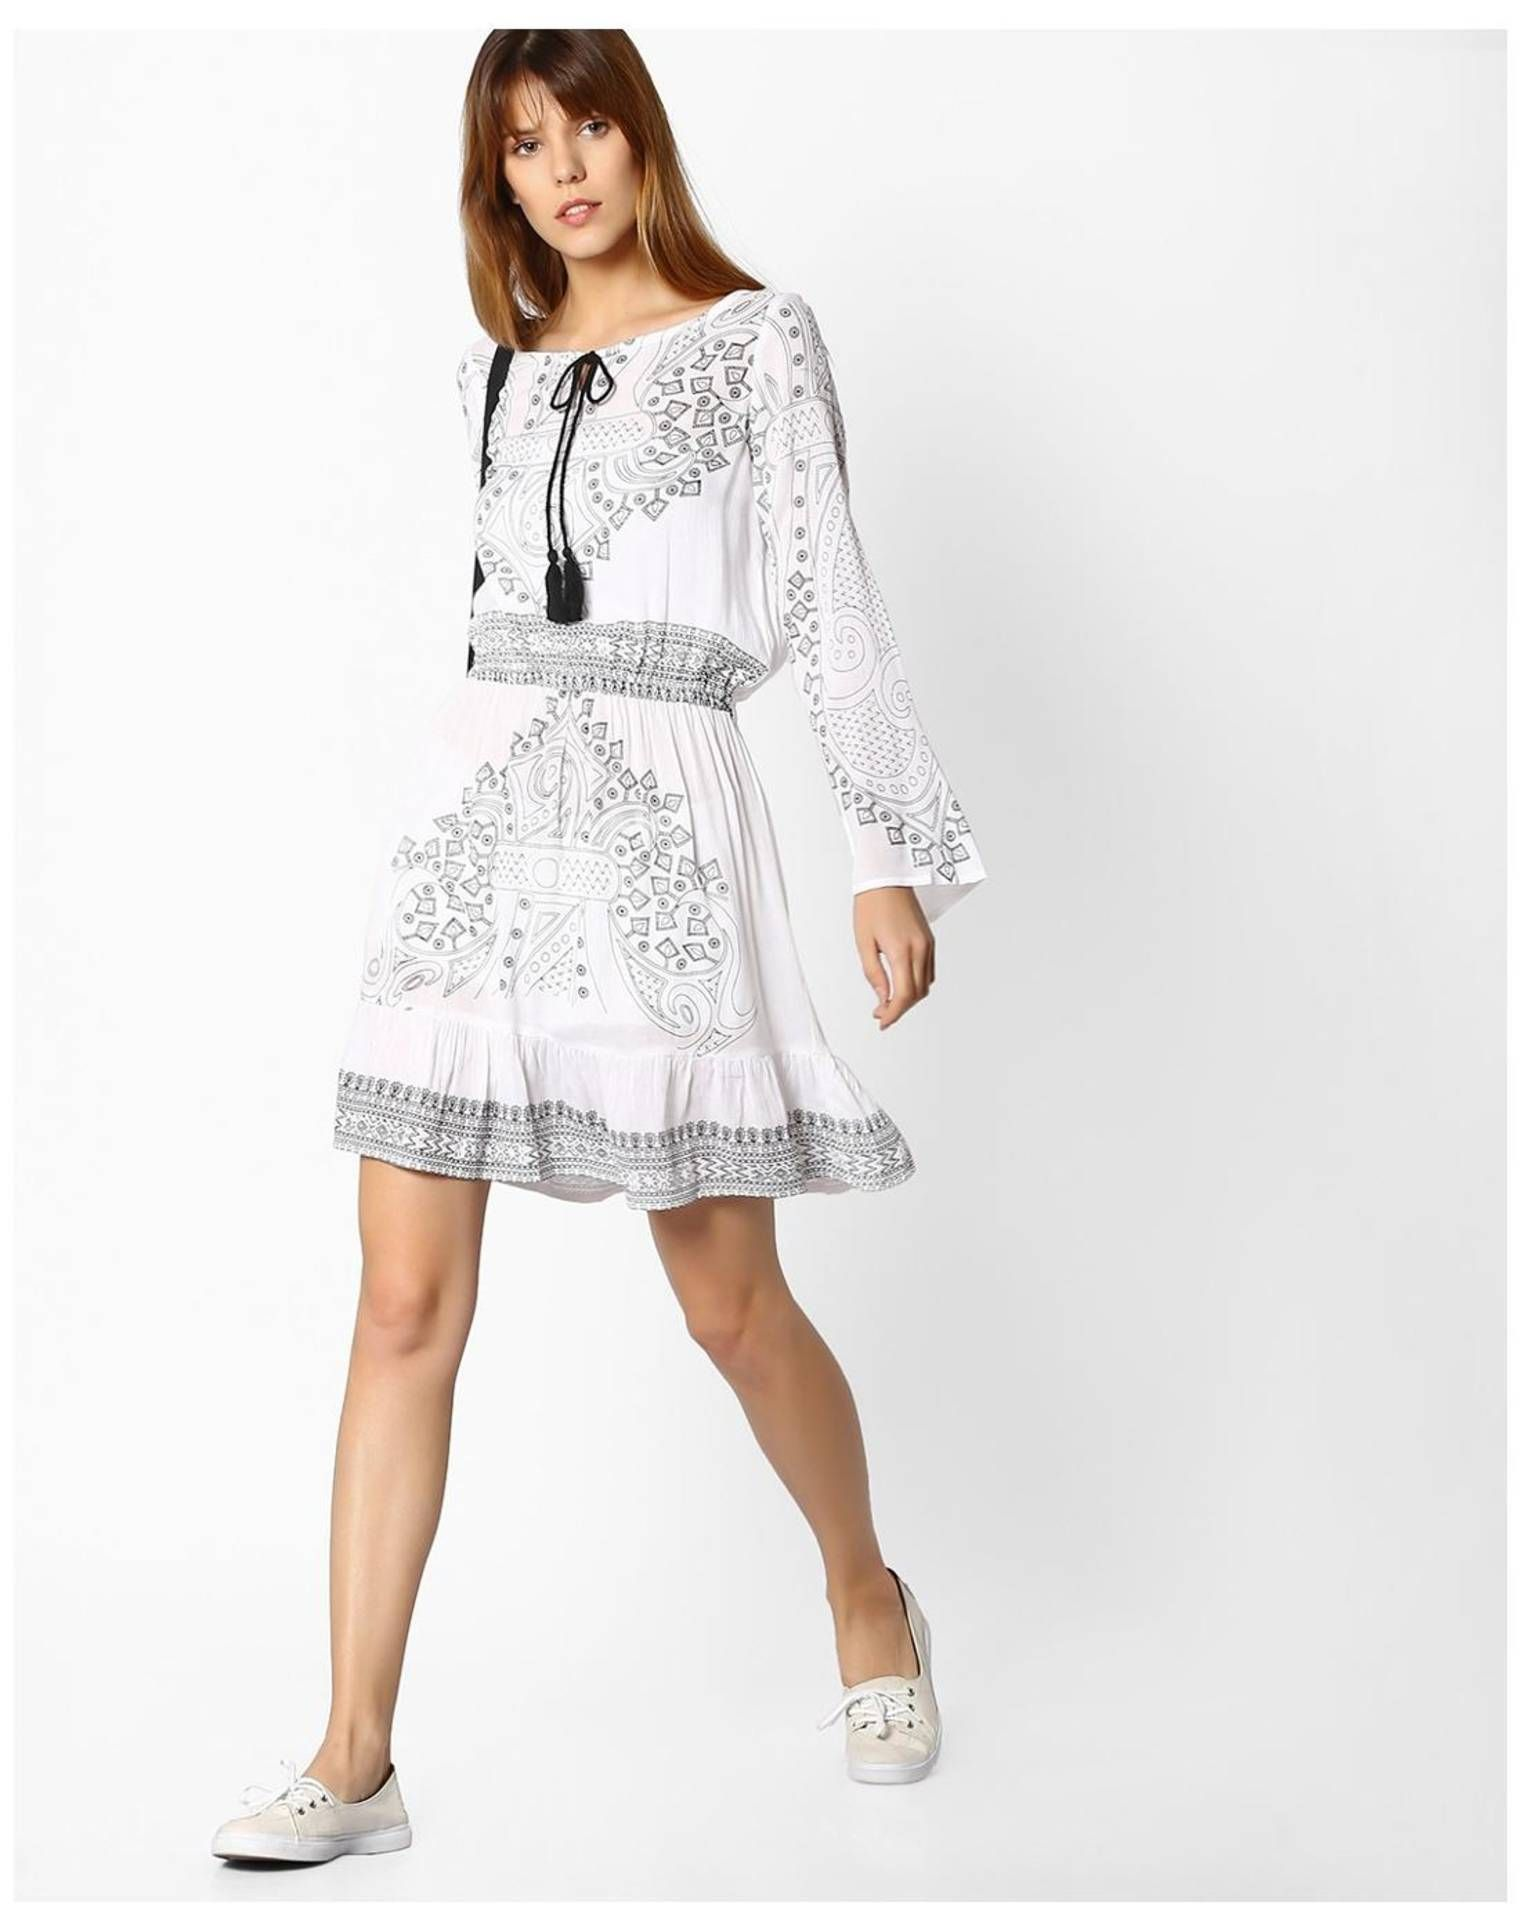 fc955099e65 Paytmmall.com - Buy FIG By Reliance Trends White Cotton Dress online at best  prices